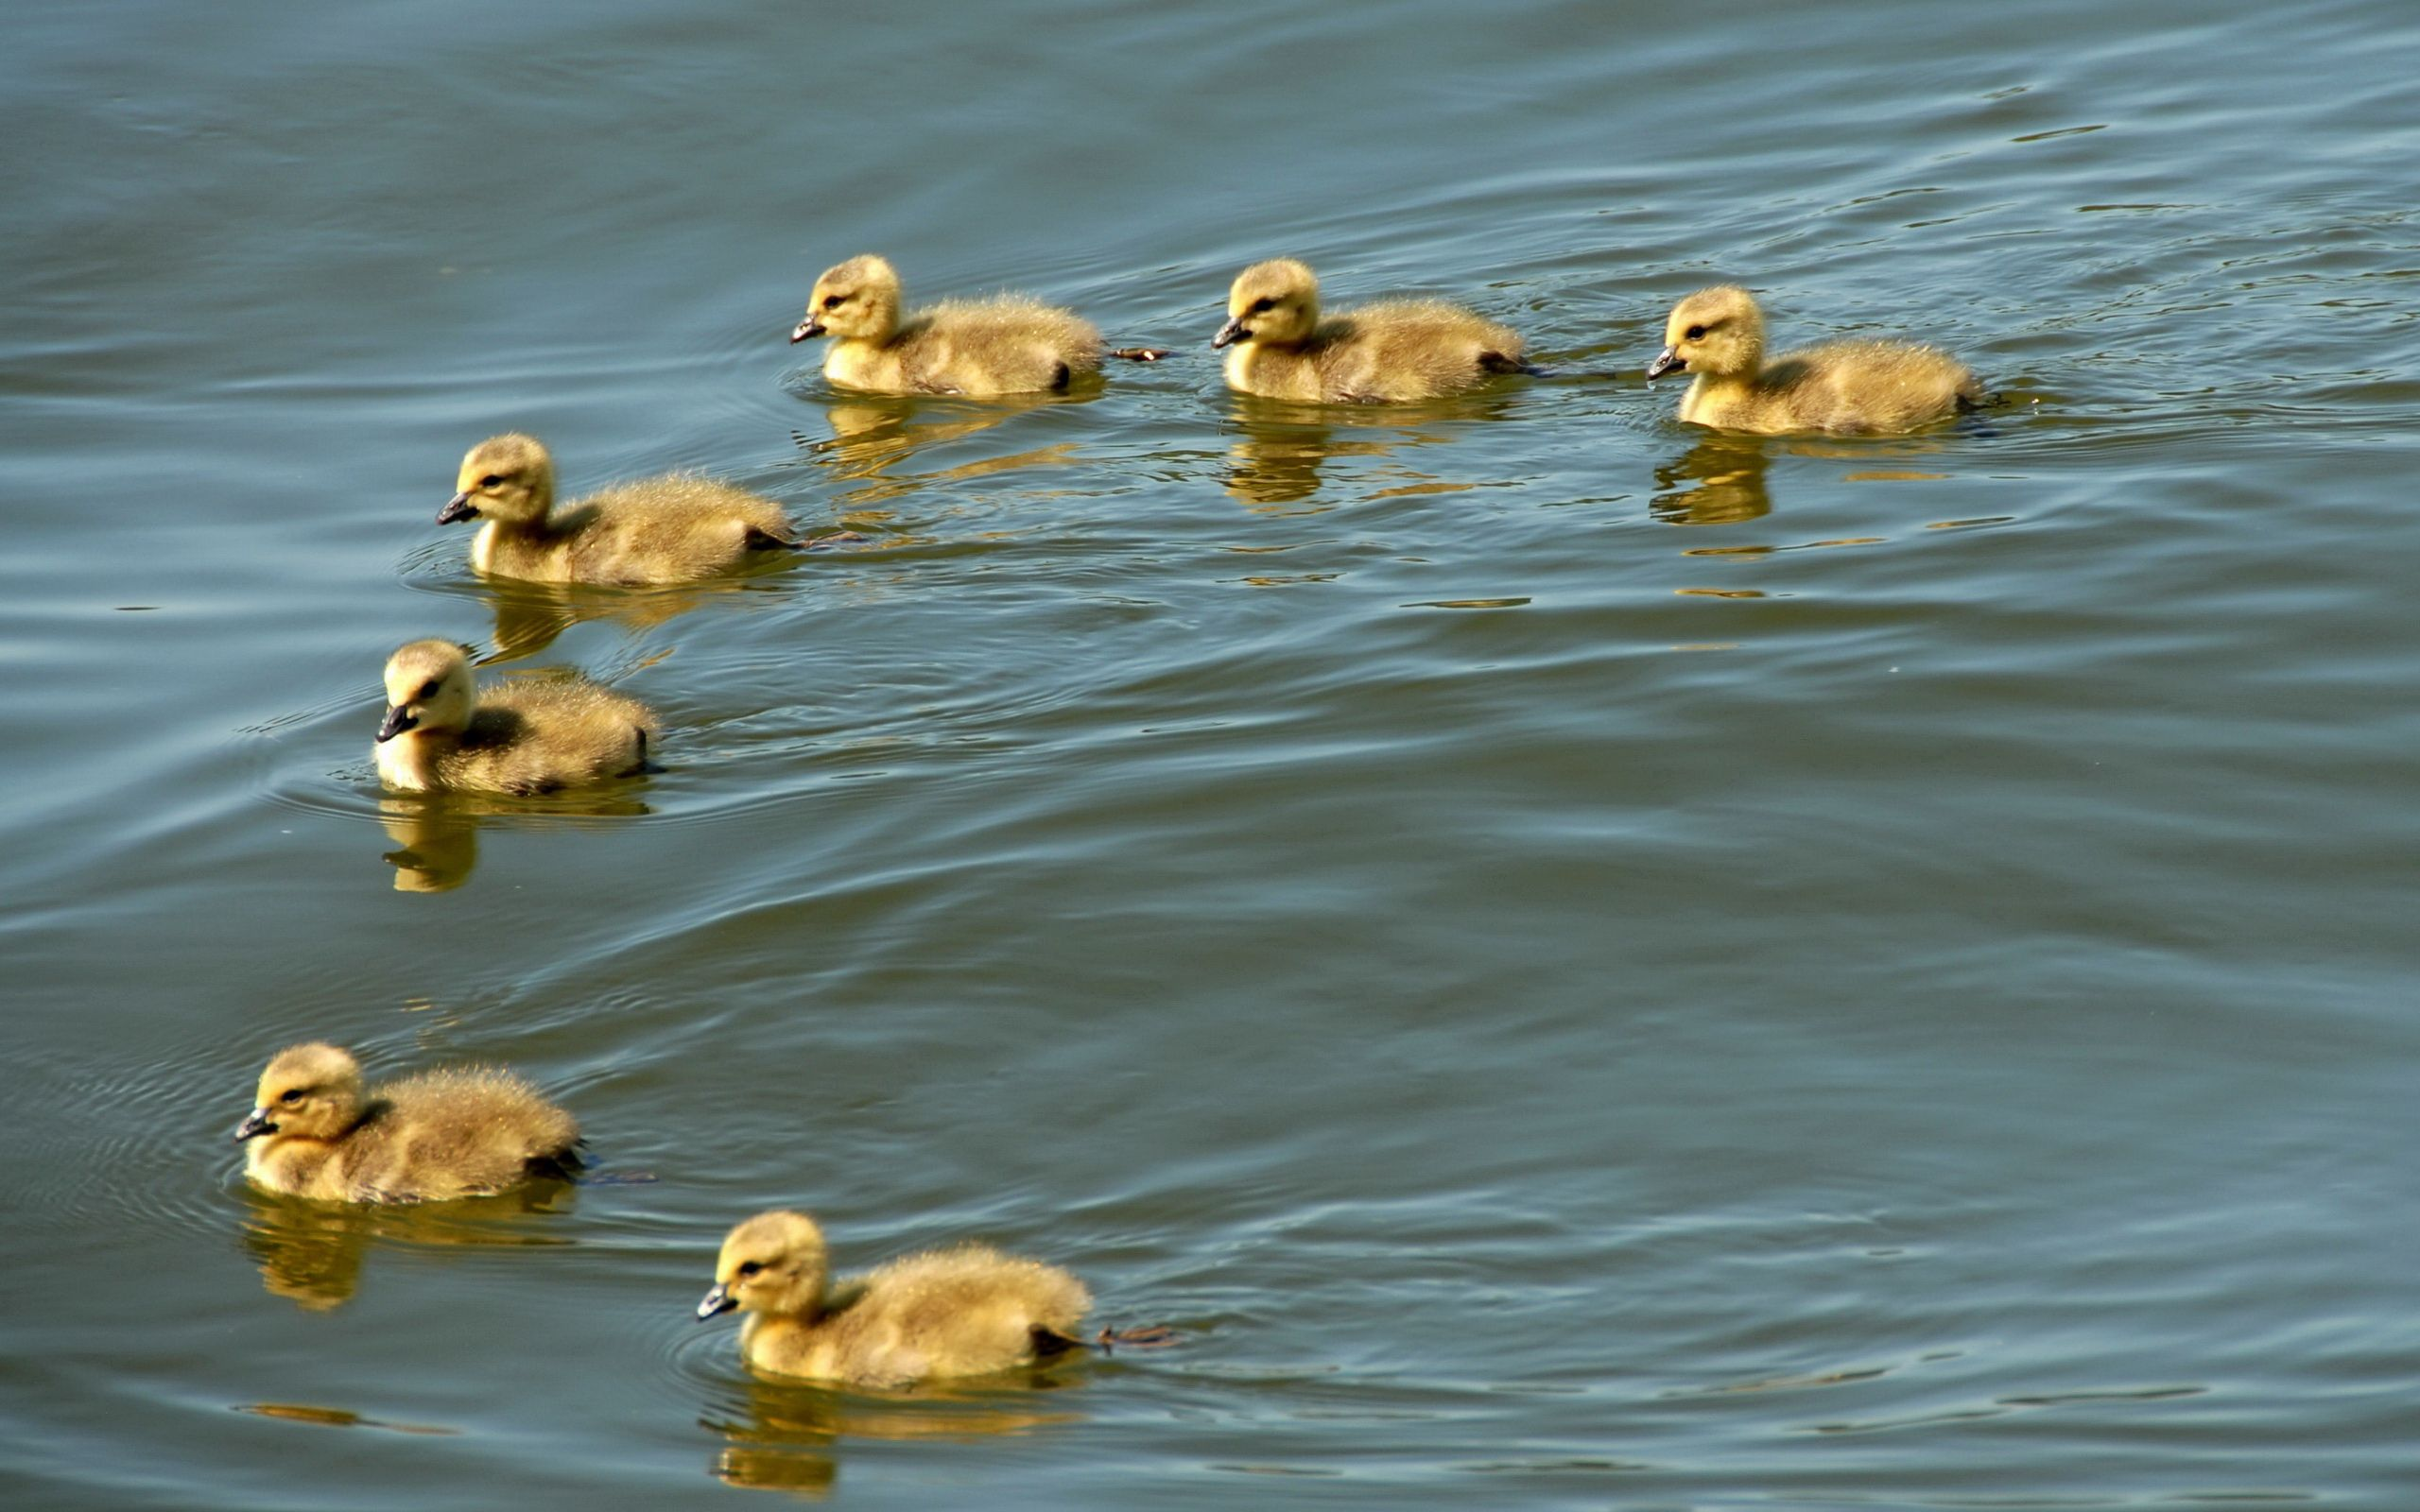 134648 download wallpaper Animals, Ducklings, To Swim, Swim, Flock, Birds screensavers and pictures for free